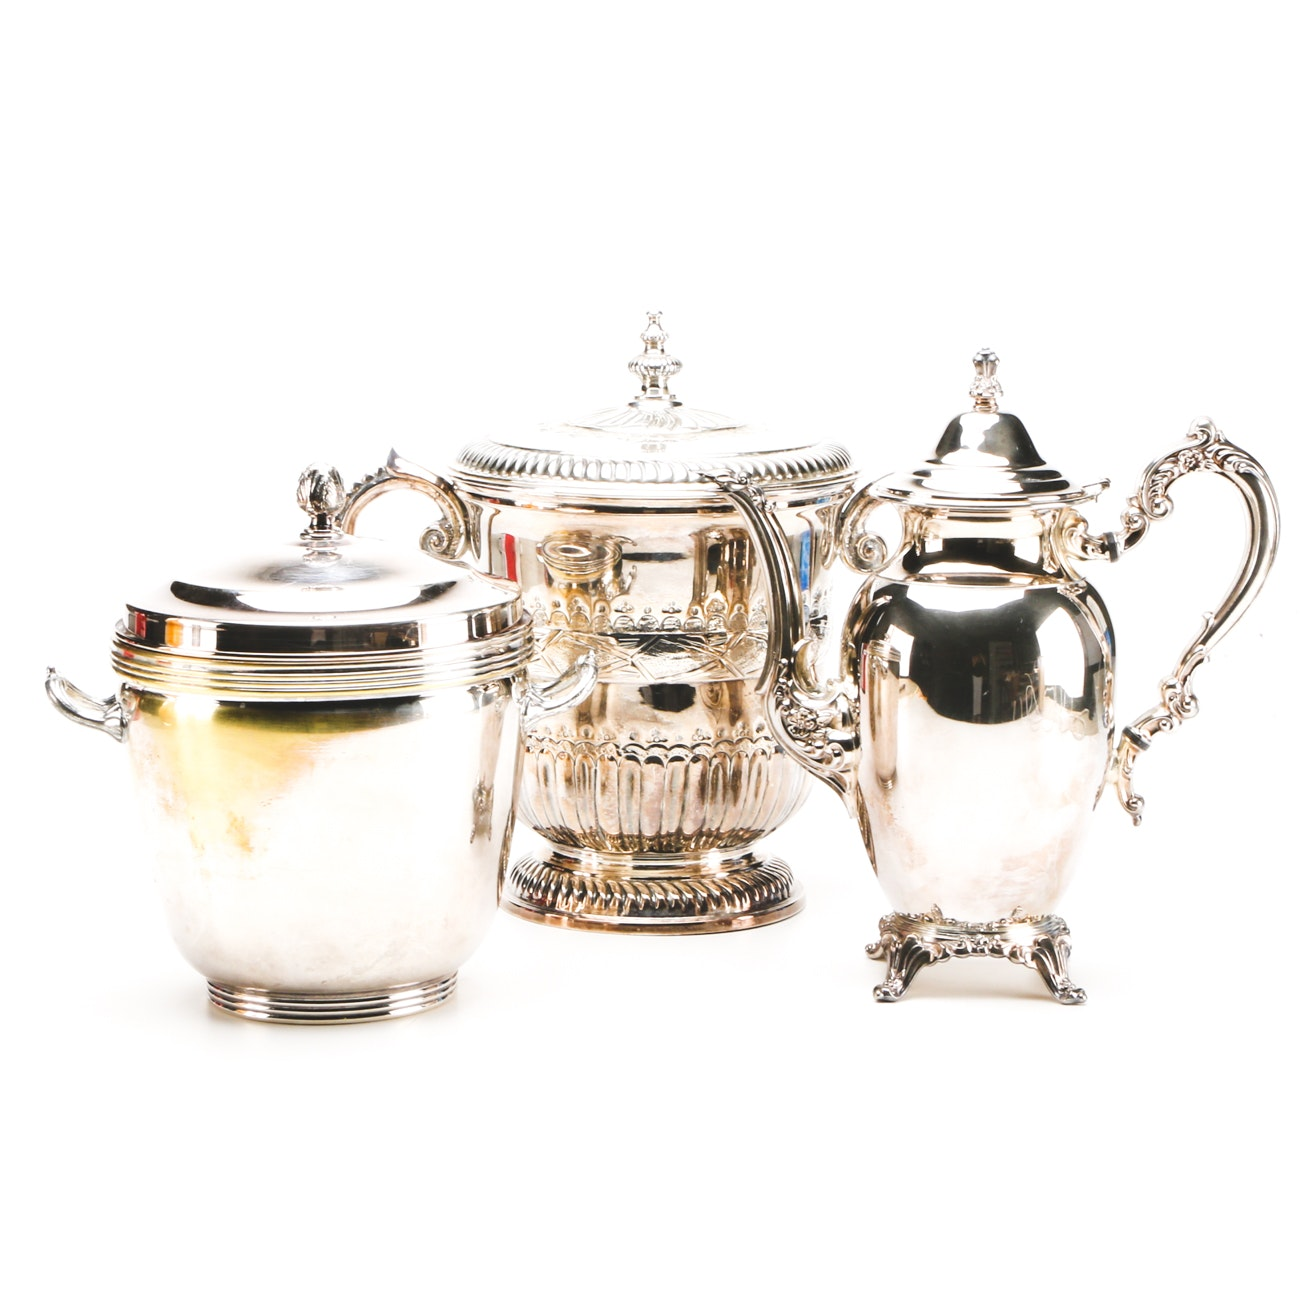 Silverplate Ice Buckets and Coffee Dispenser